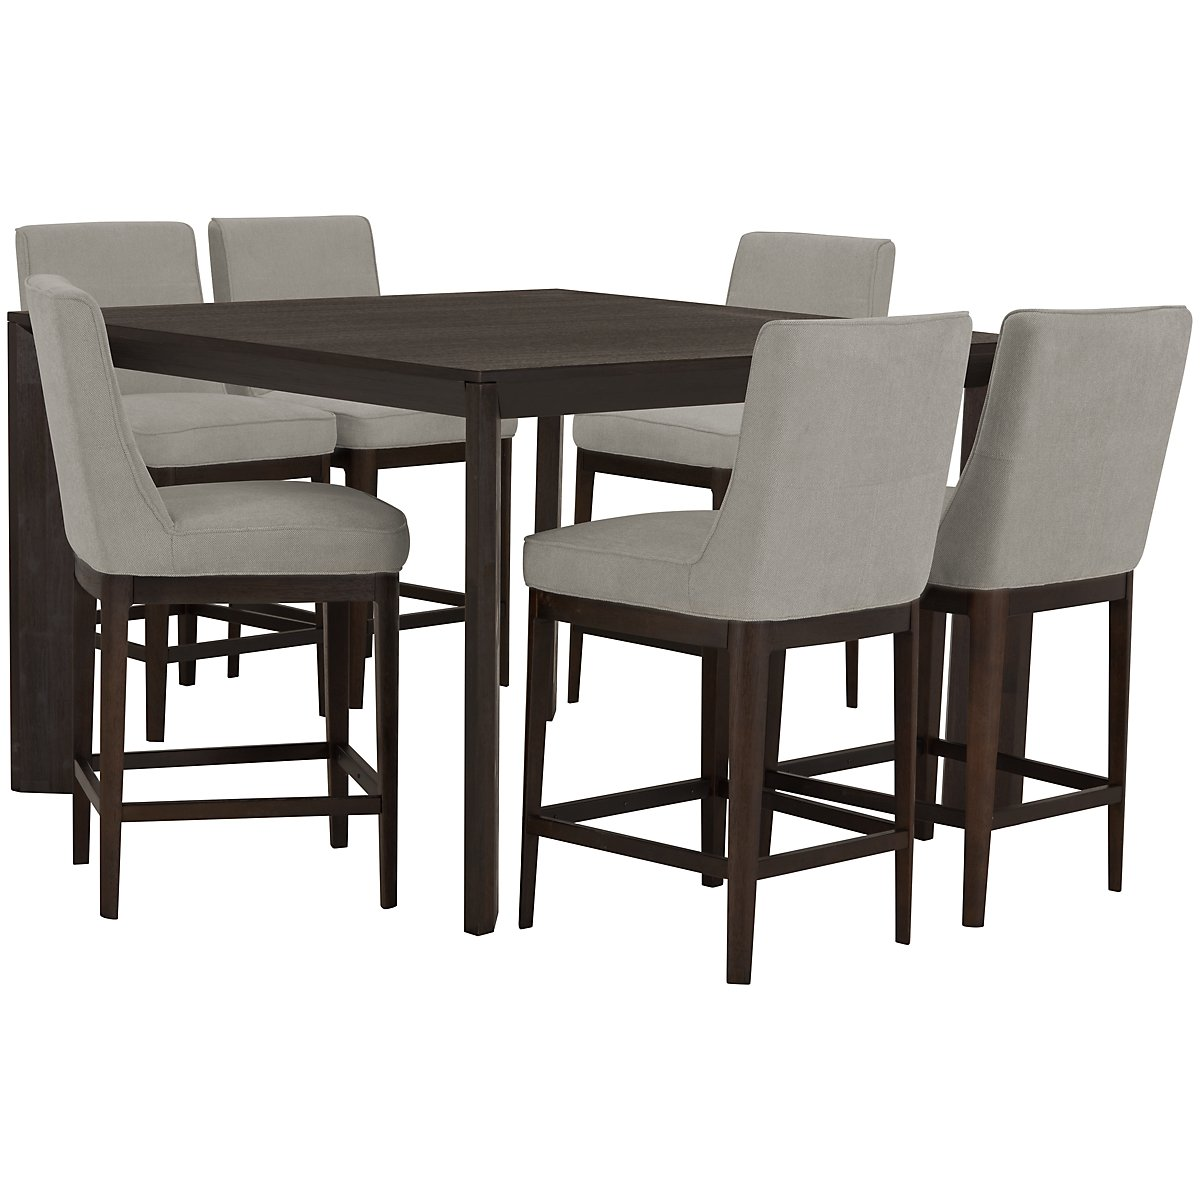 City furniture rylan dark tone high dining table for The best dining tables